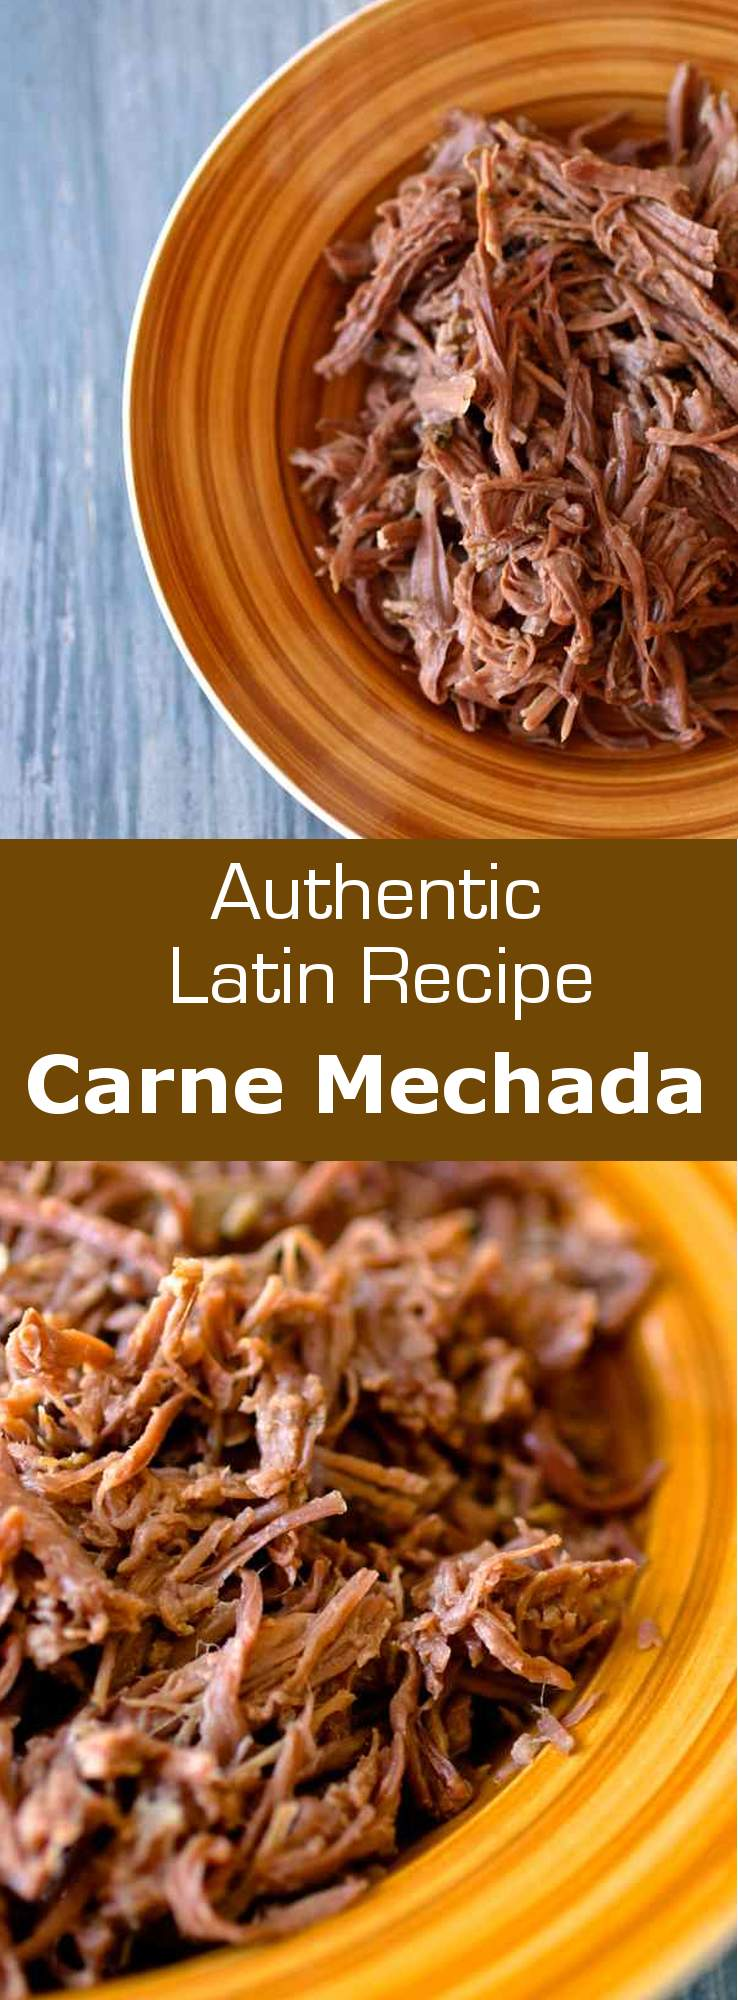 Carne mechada is shredded meat that serves as a base for a number of recipes in Latin America, including as filling for empanadas and arepas. #meat #beef #costarica #latincuisine #latin